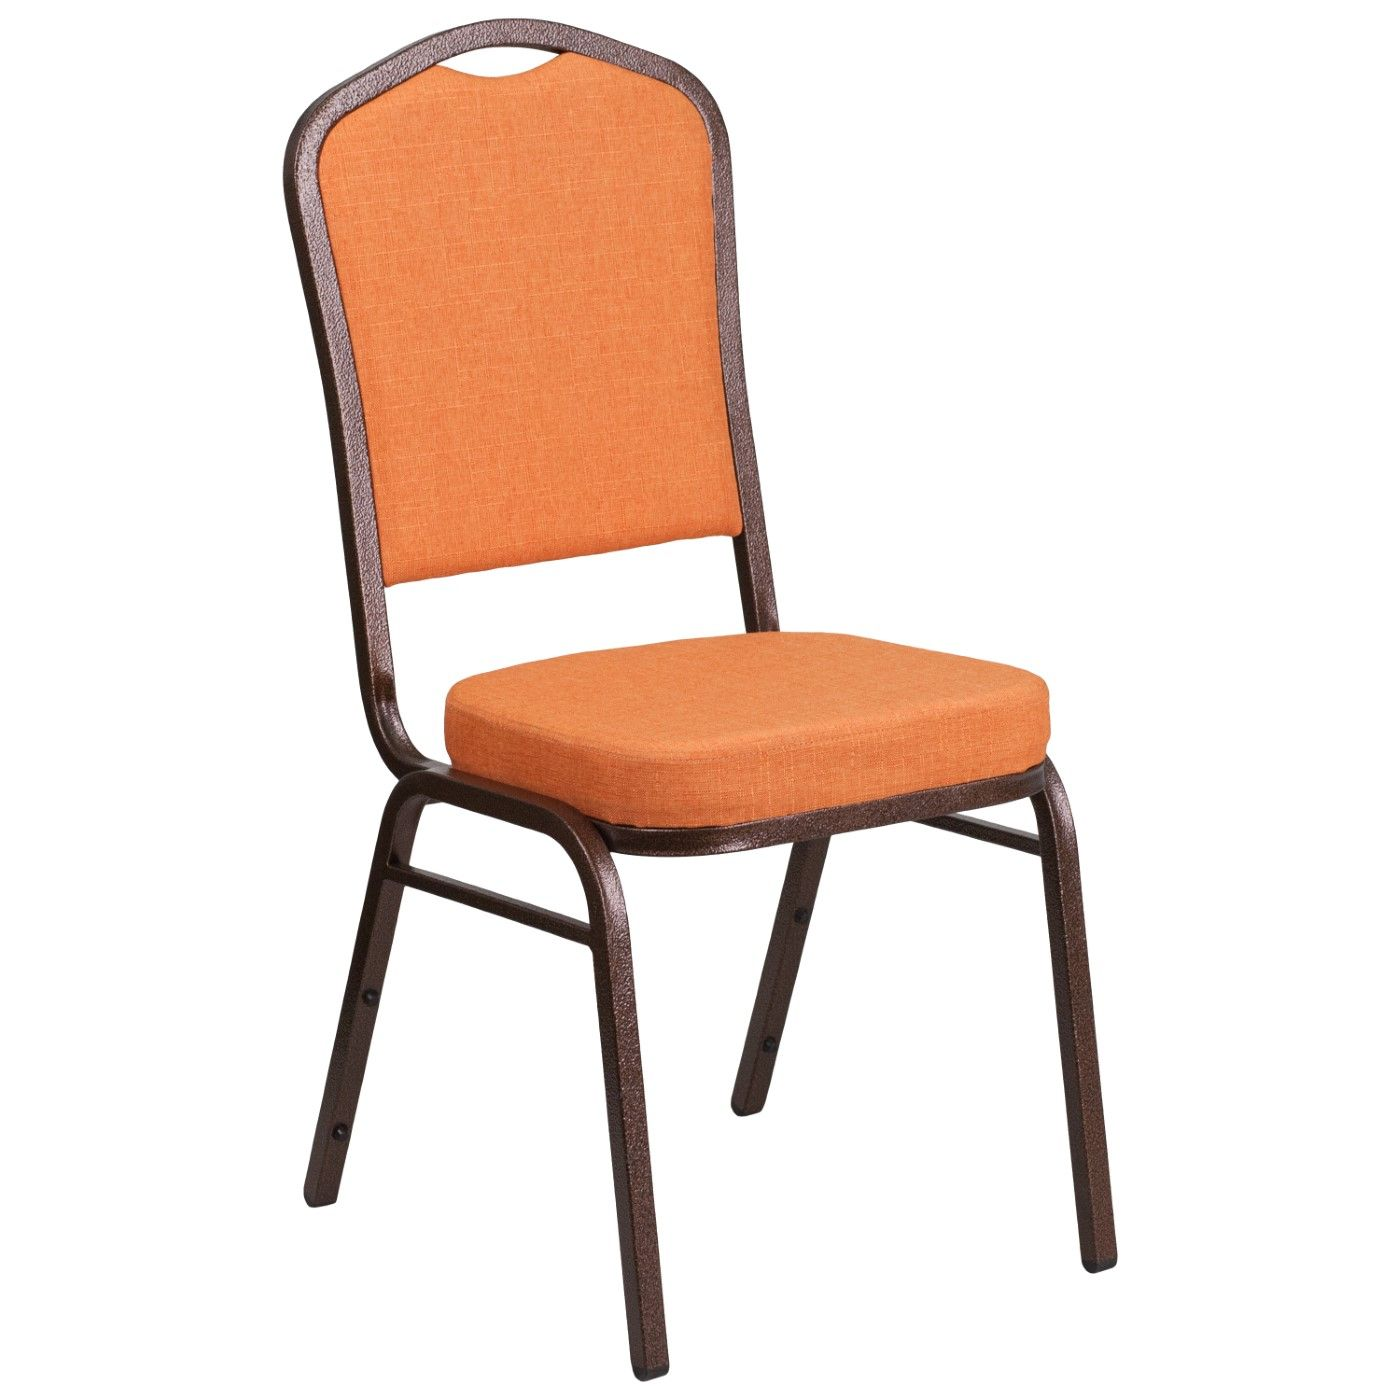 TOUGH ENOUGH Series Crown Back Stacking Banquet Chair in Orange Fabric - Copper Vein Frame